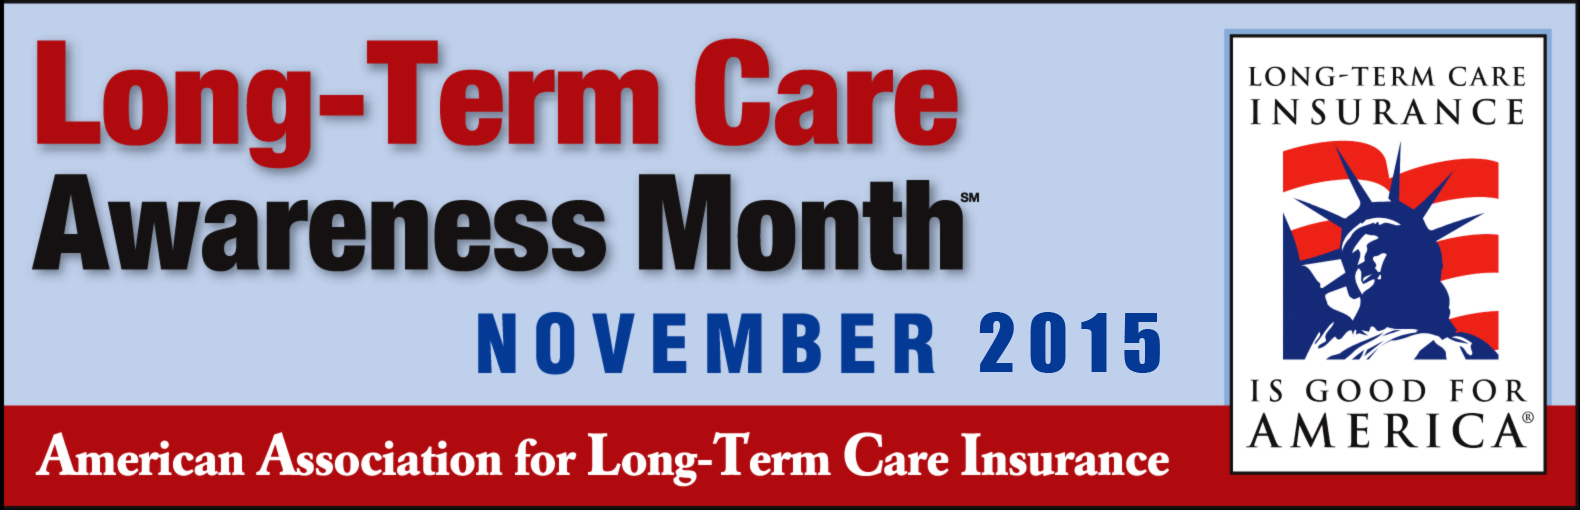 Long Term Care Awareness Month Banner 2015